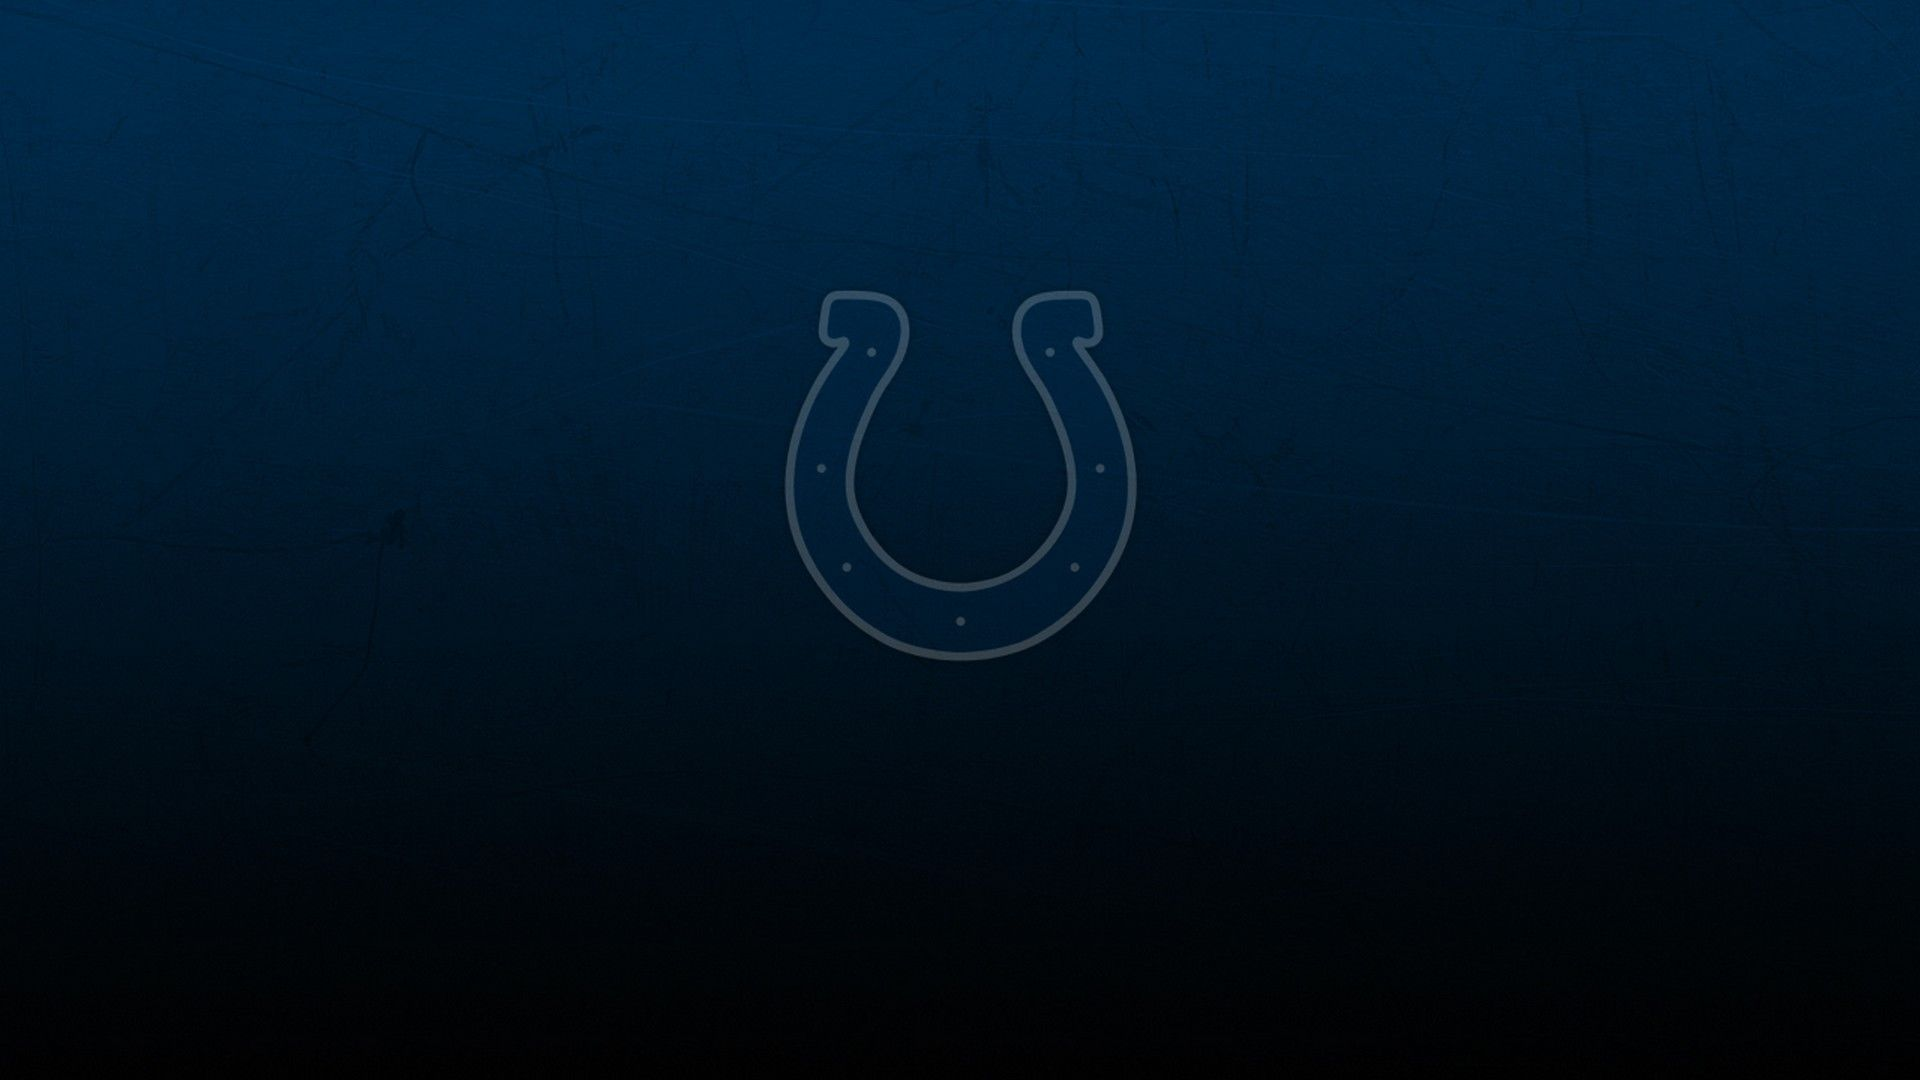 Wallpapers Indianapolis Colts Wallpapers Indianapolis colts 1920x1080